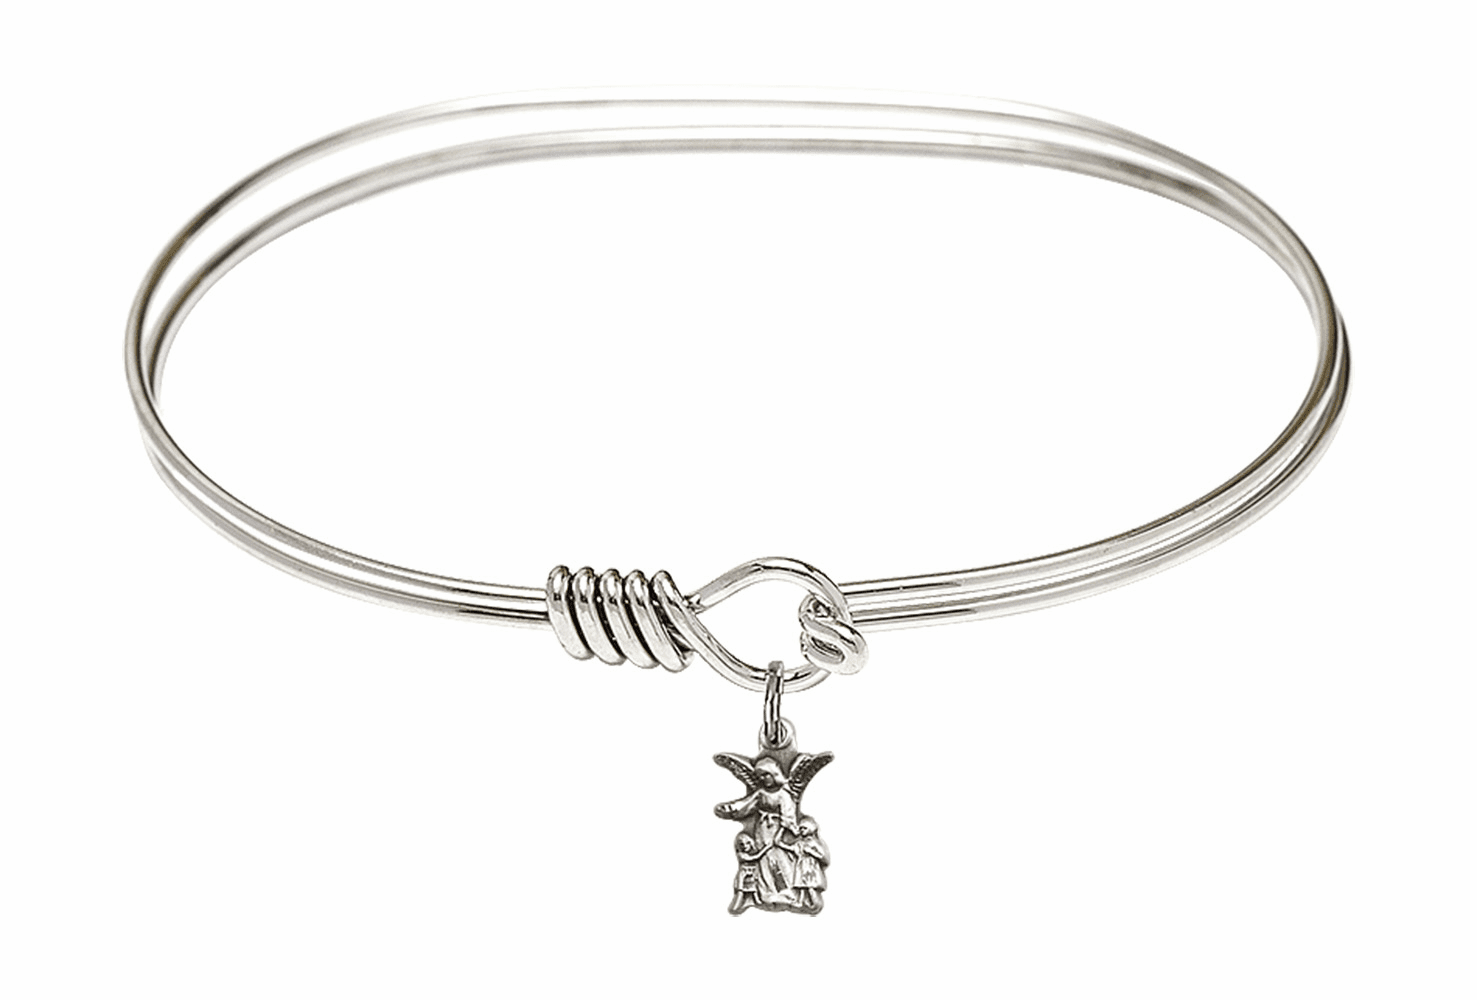 Round Eye Hook Bangle Bracelet w/Guardian Angel Figure Sterling Silver Charm by Bliss Mfg